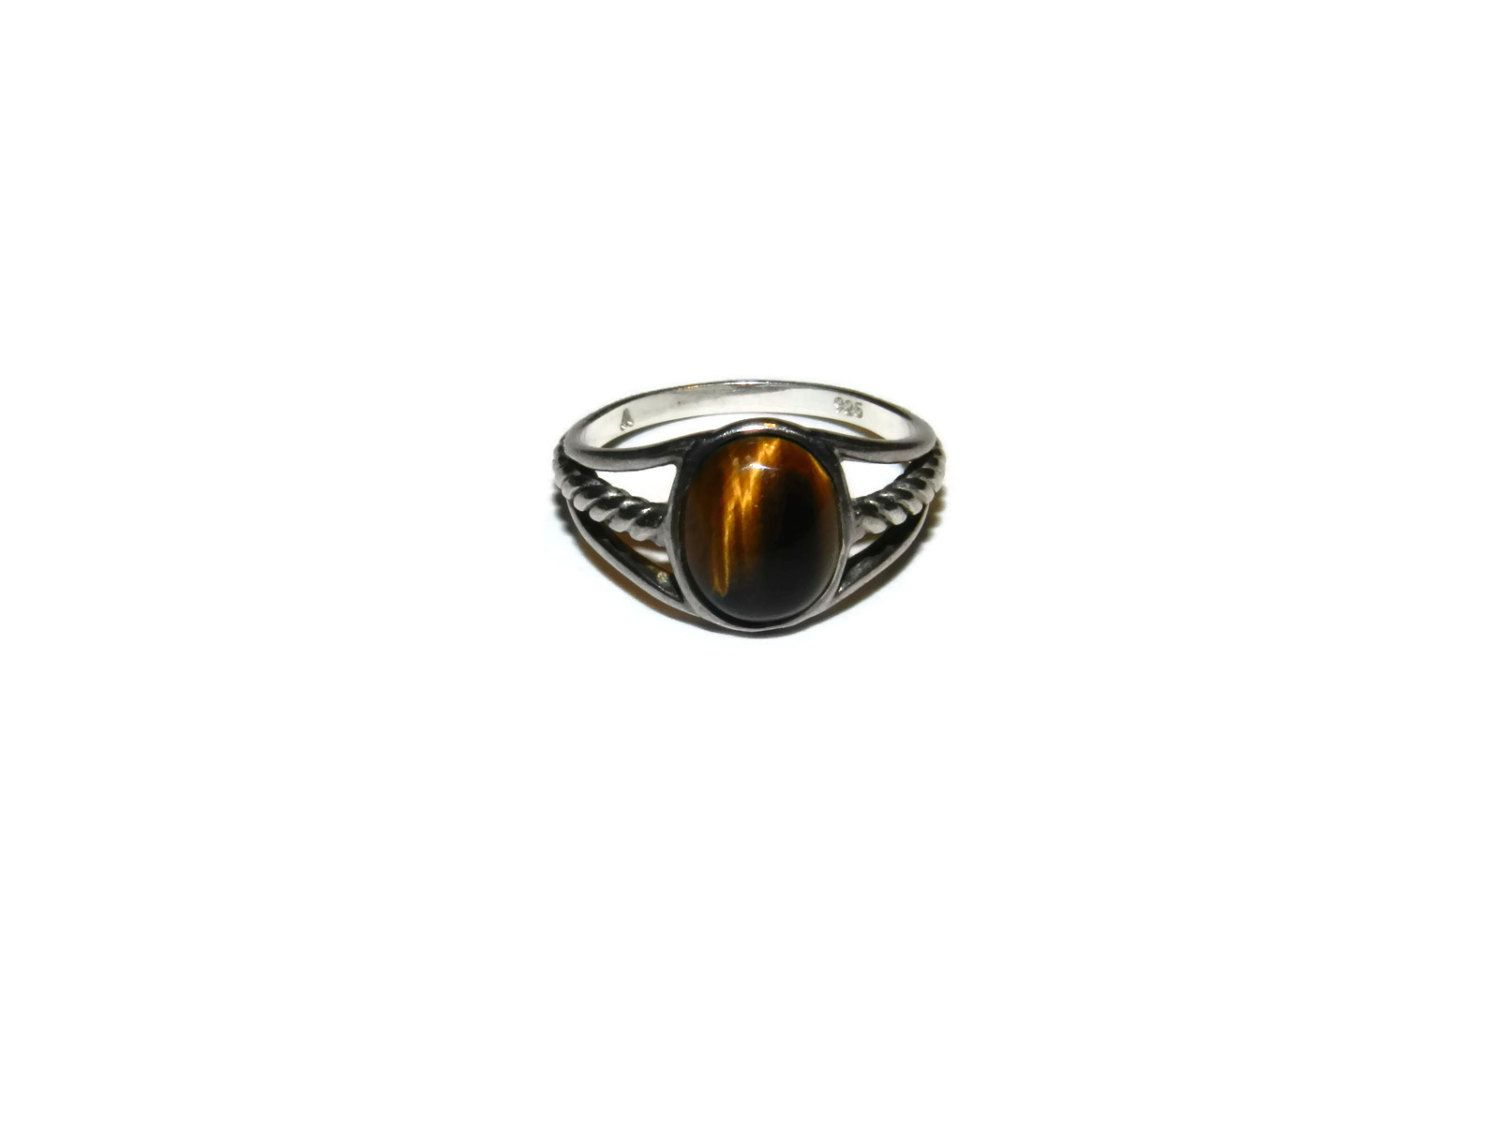 Sterling Silver Tiger Eye Ring Size 7, 925 Ring, Sterling Jewelry by MidWestMerMade on Etsy